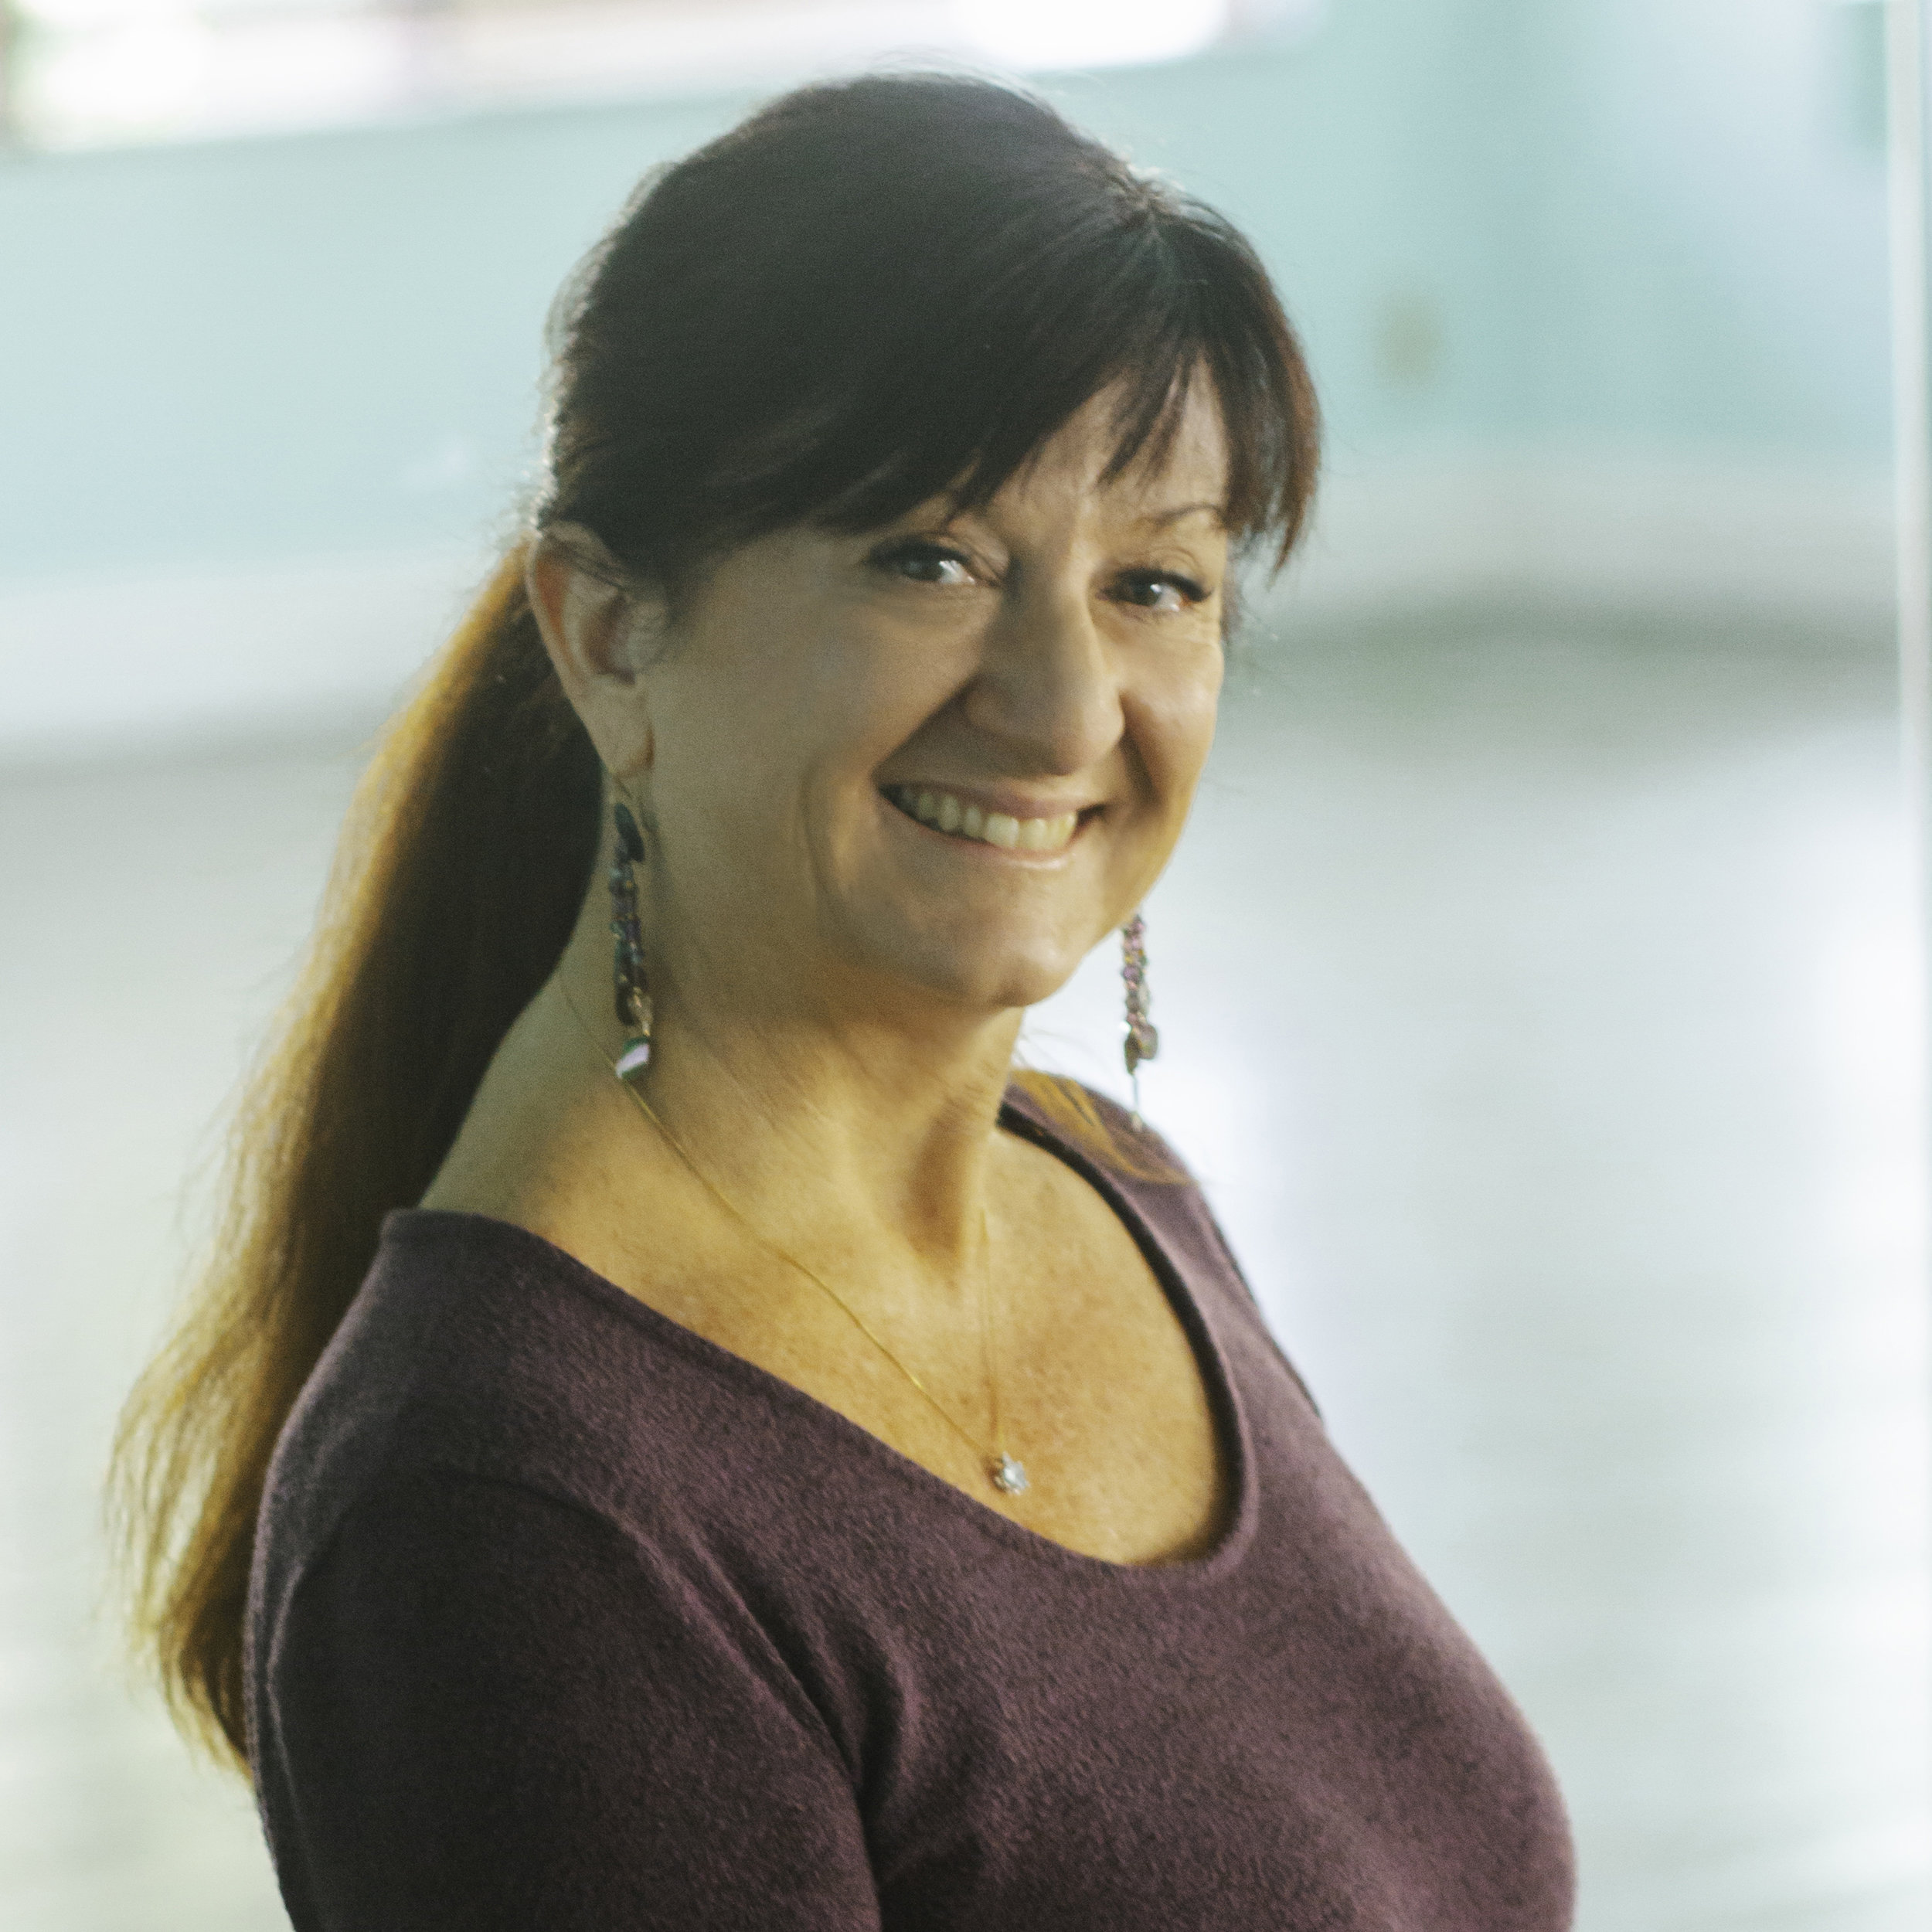 Betsy - Betsy loves sharing her passion for dance with others. She specializes in teaching tap.